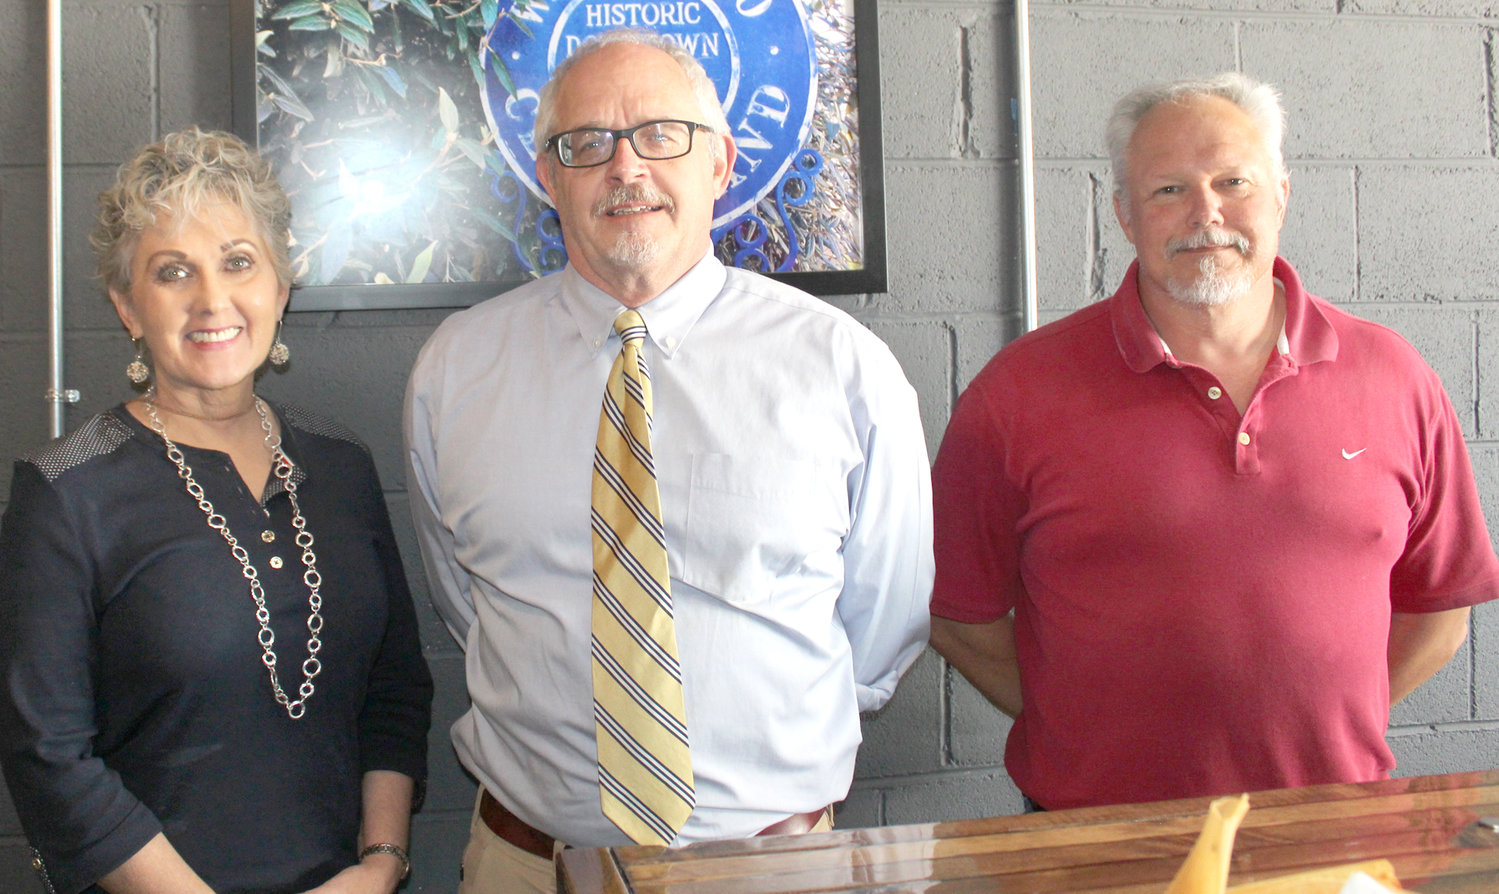 BRADLEY COUNTY Bar Association president Richard Hughes, center, stands with Restoration DUI School director Brenda Thomas and Bradley County Public Defenders Office investigator Ken Ritenour, who spoke during a bar association luncheon held recently at The Press in downtown Cleveland.